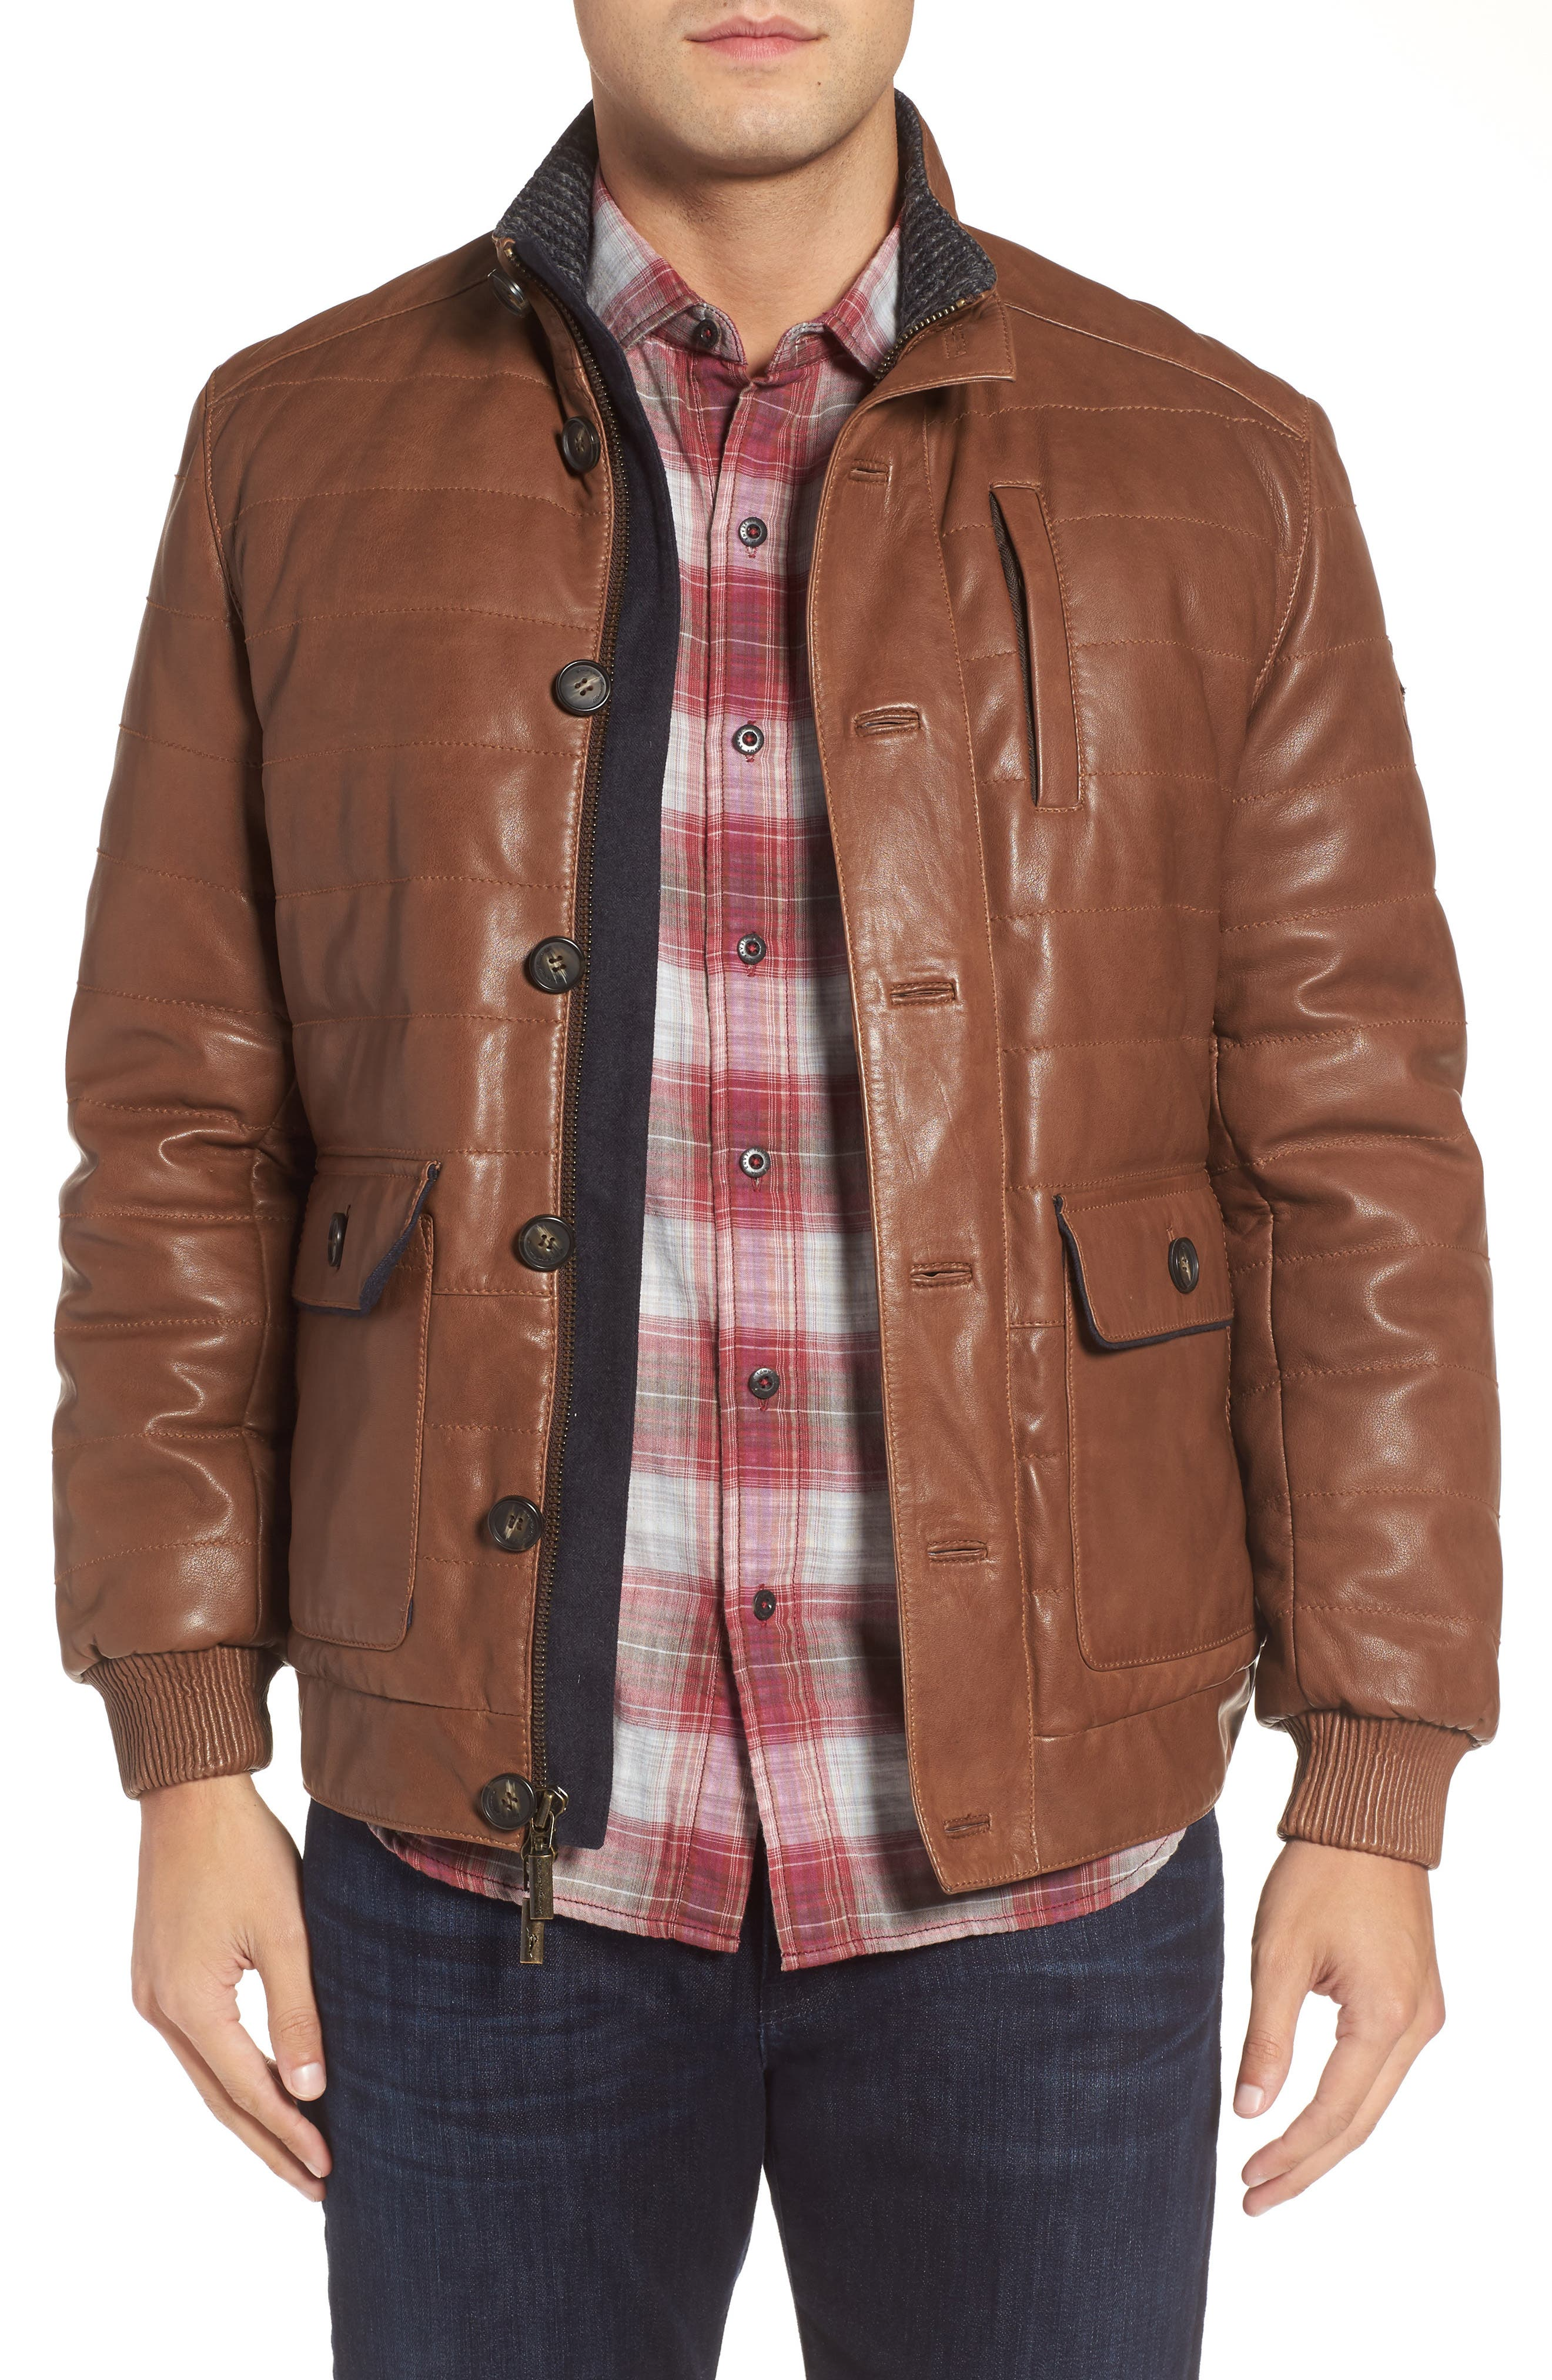 Snowside Leather Bomber Jacket,                             Main thumbnail 1, color,                             200